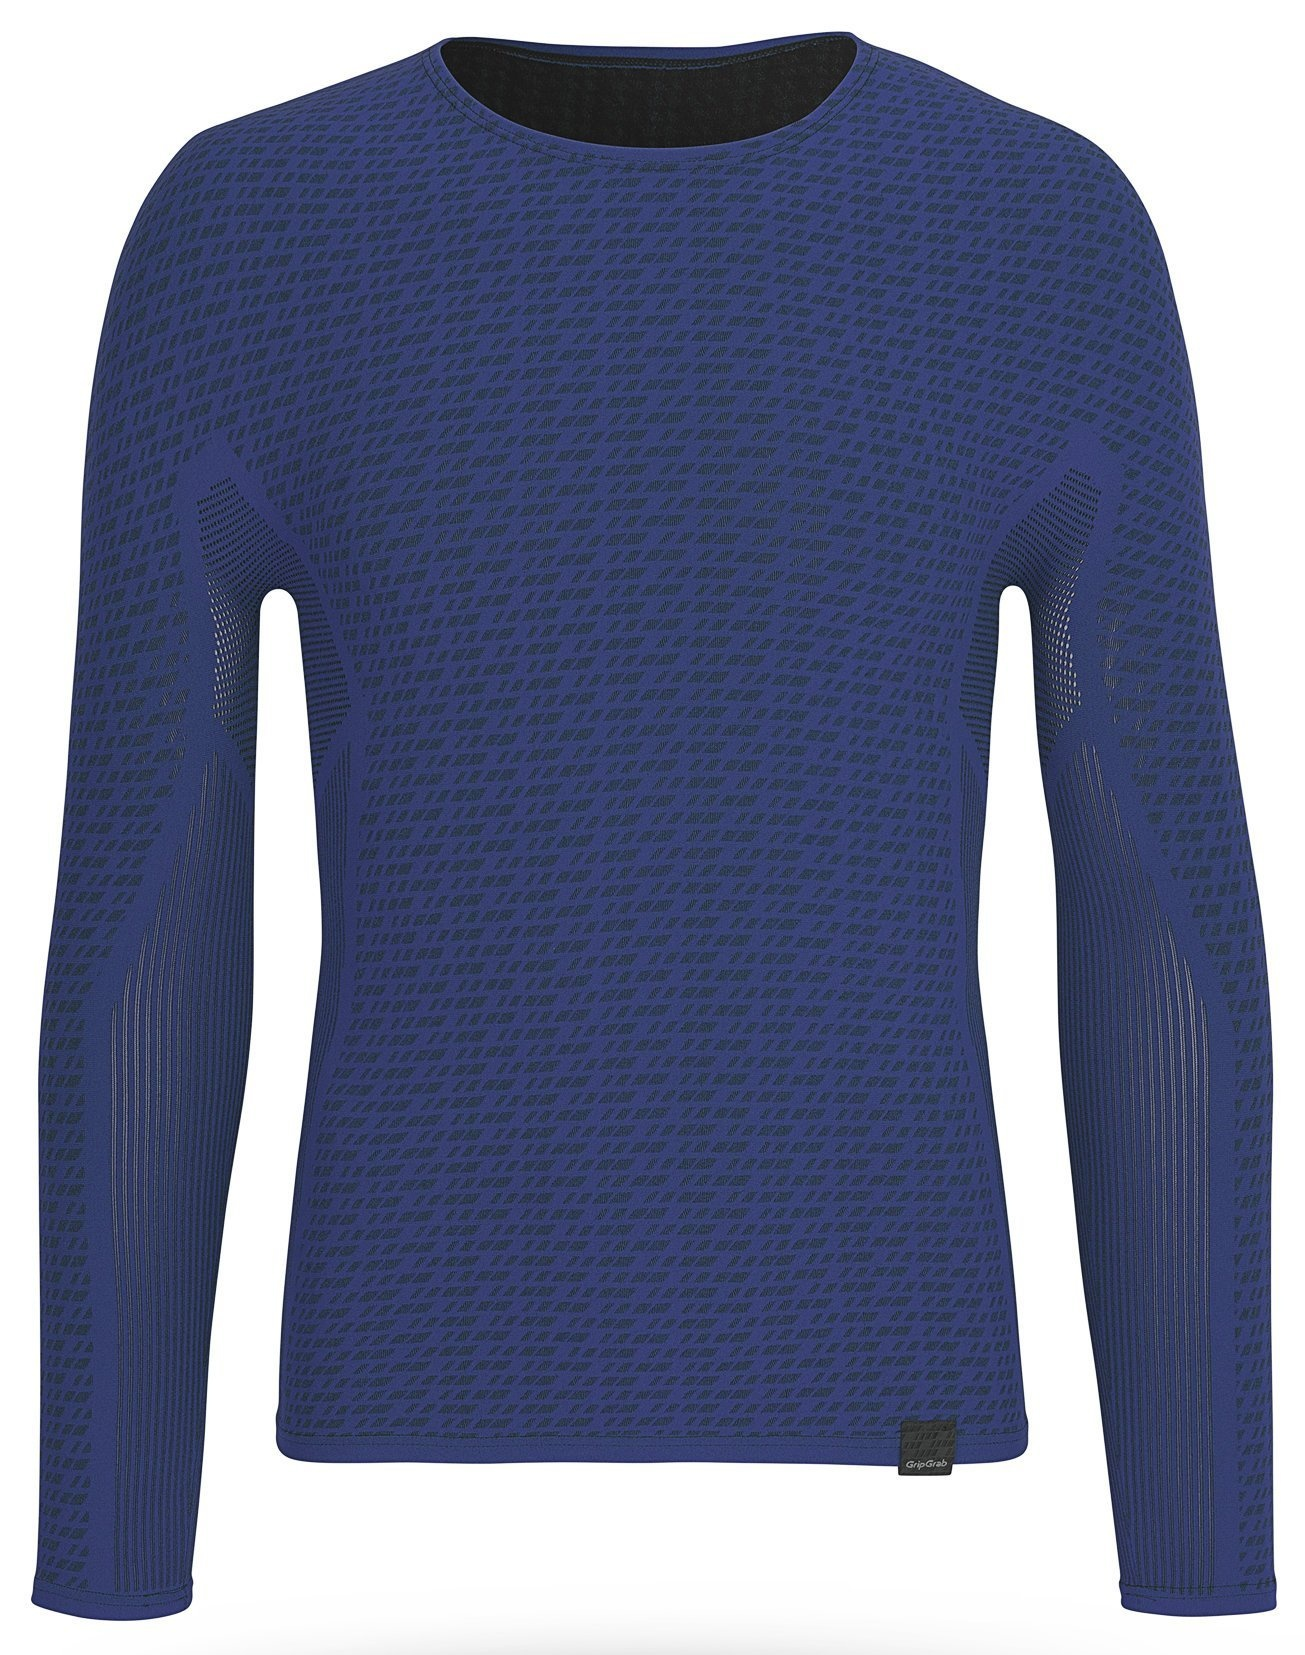 GripGrab Freedom Seamless Thermal Base Layer - Navy